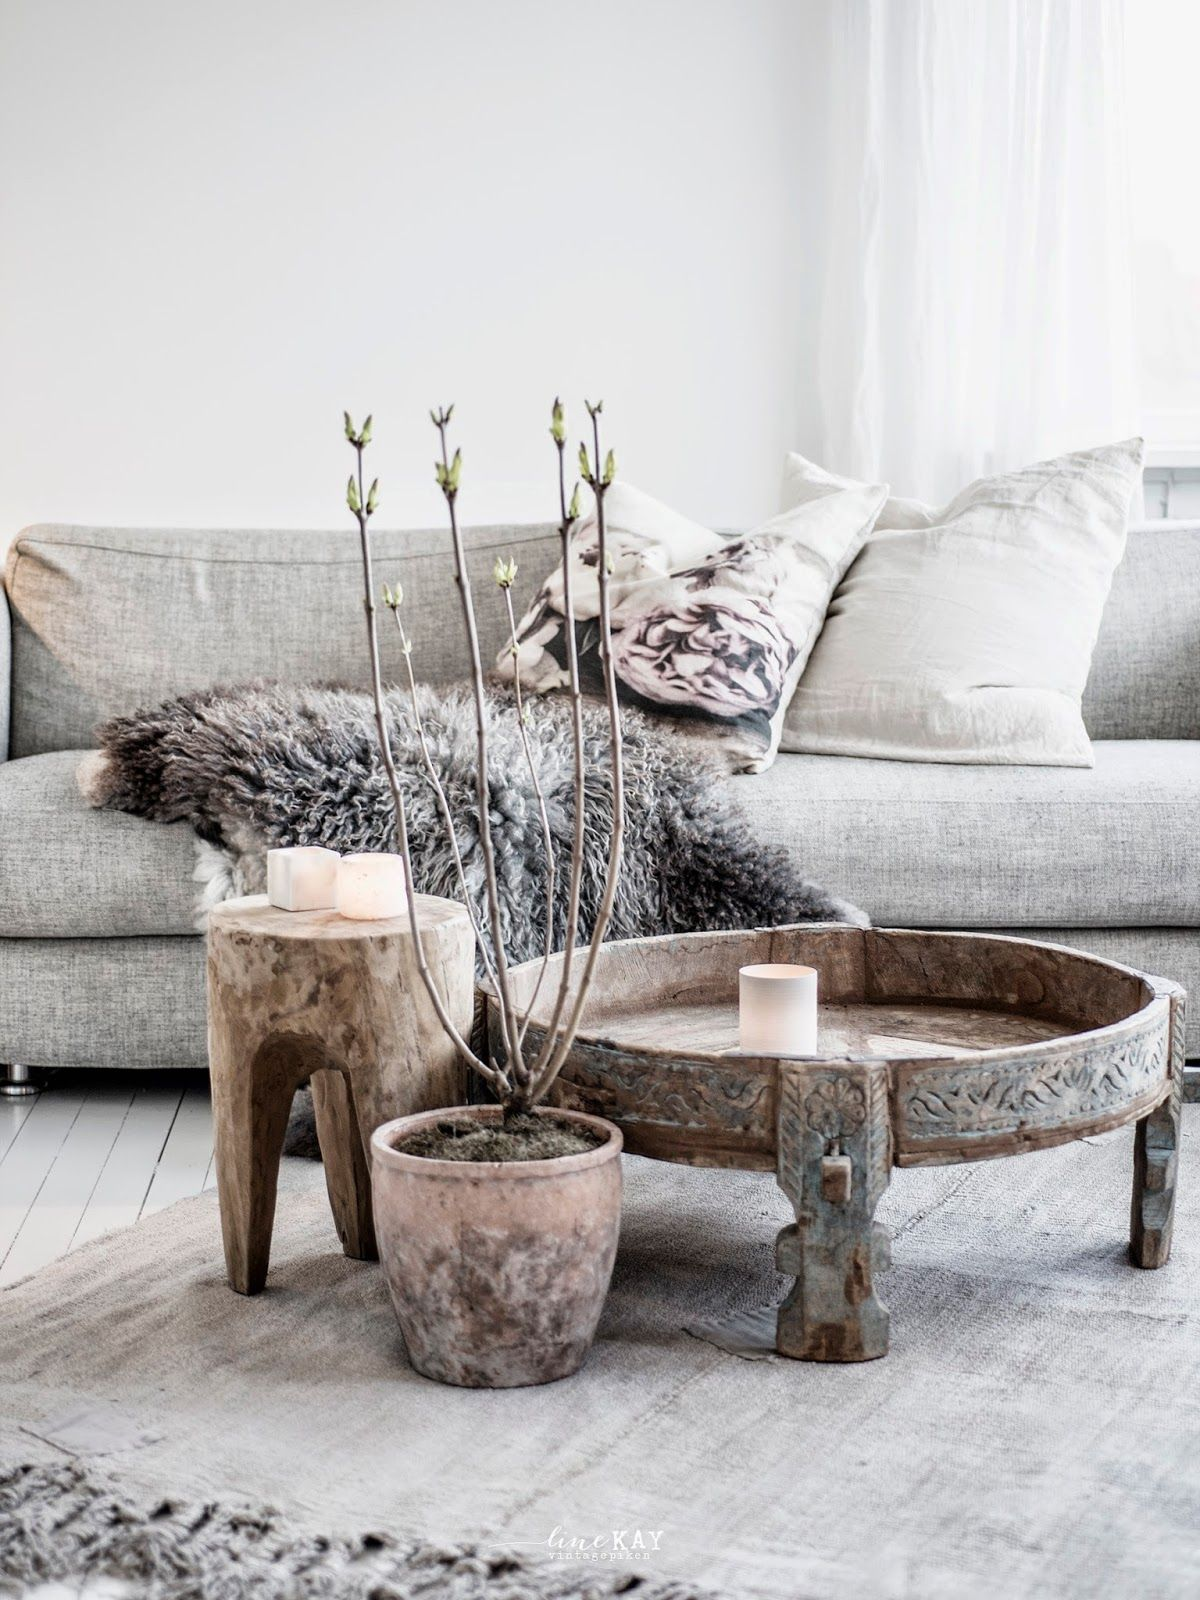 19 Glam Ways to Add Texture to Your Home | Birch, Wraps and Photography